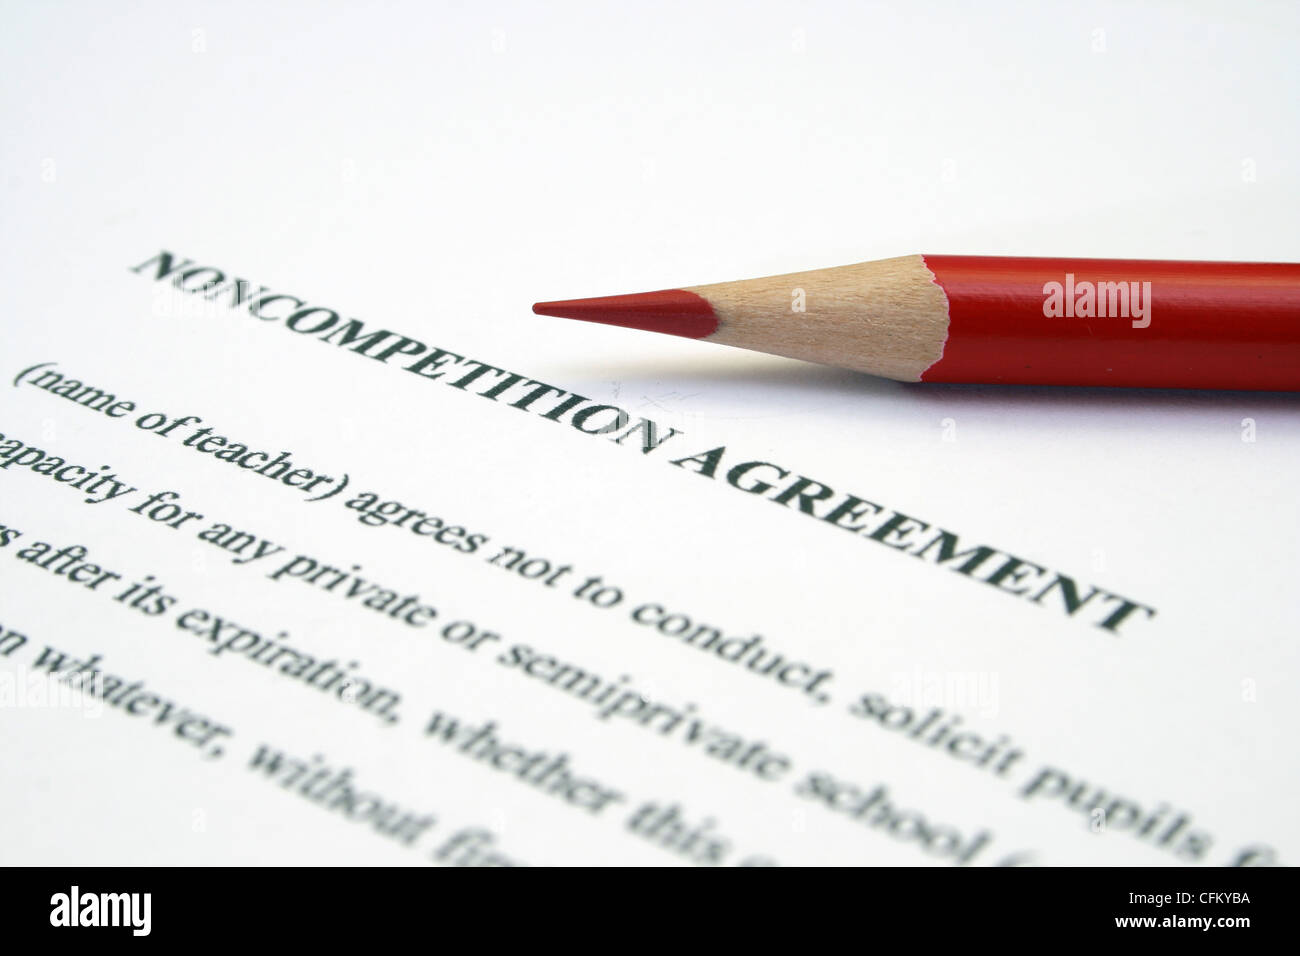 noncompetition agreement stock photo royalty image  noncompetition agreement